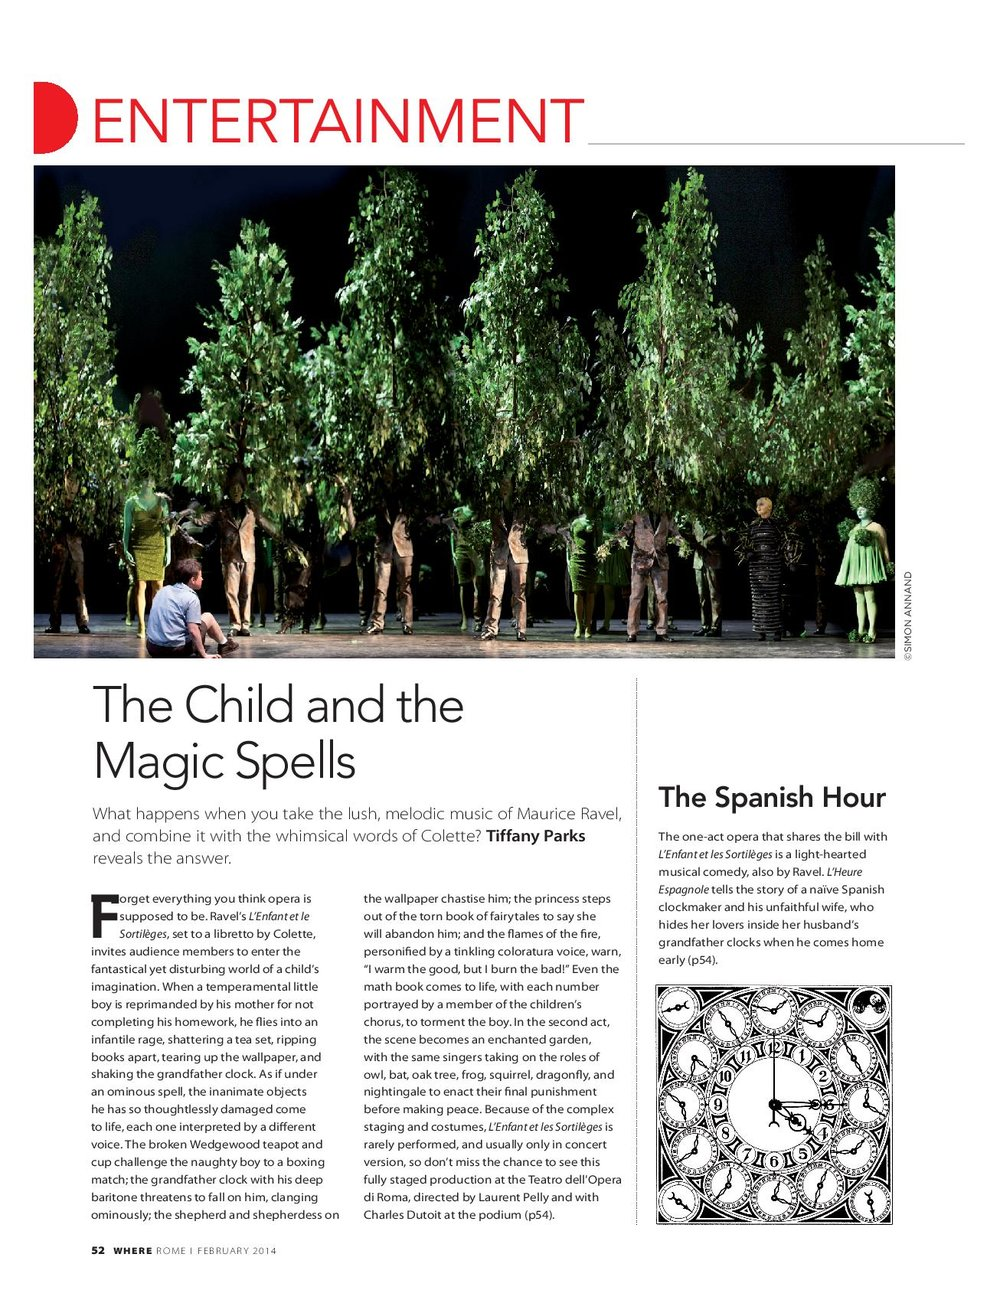 The Child and the Magic Spells, February 2014-page-001.jpg